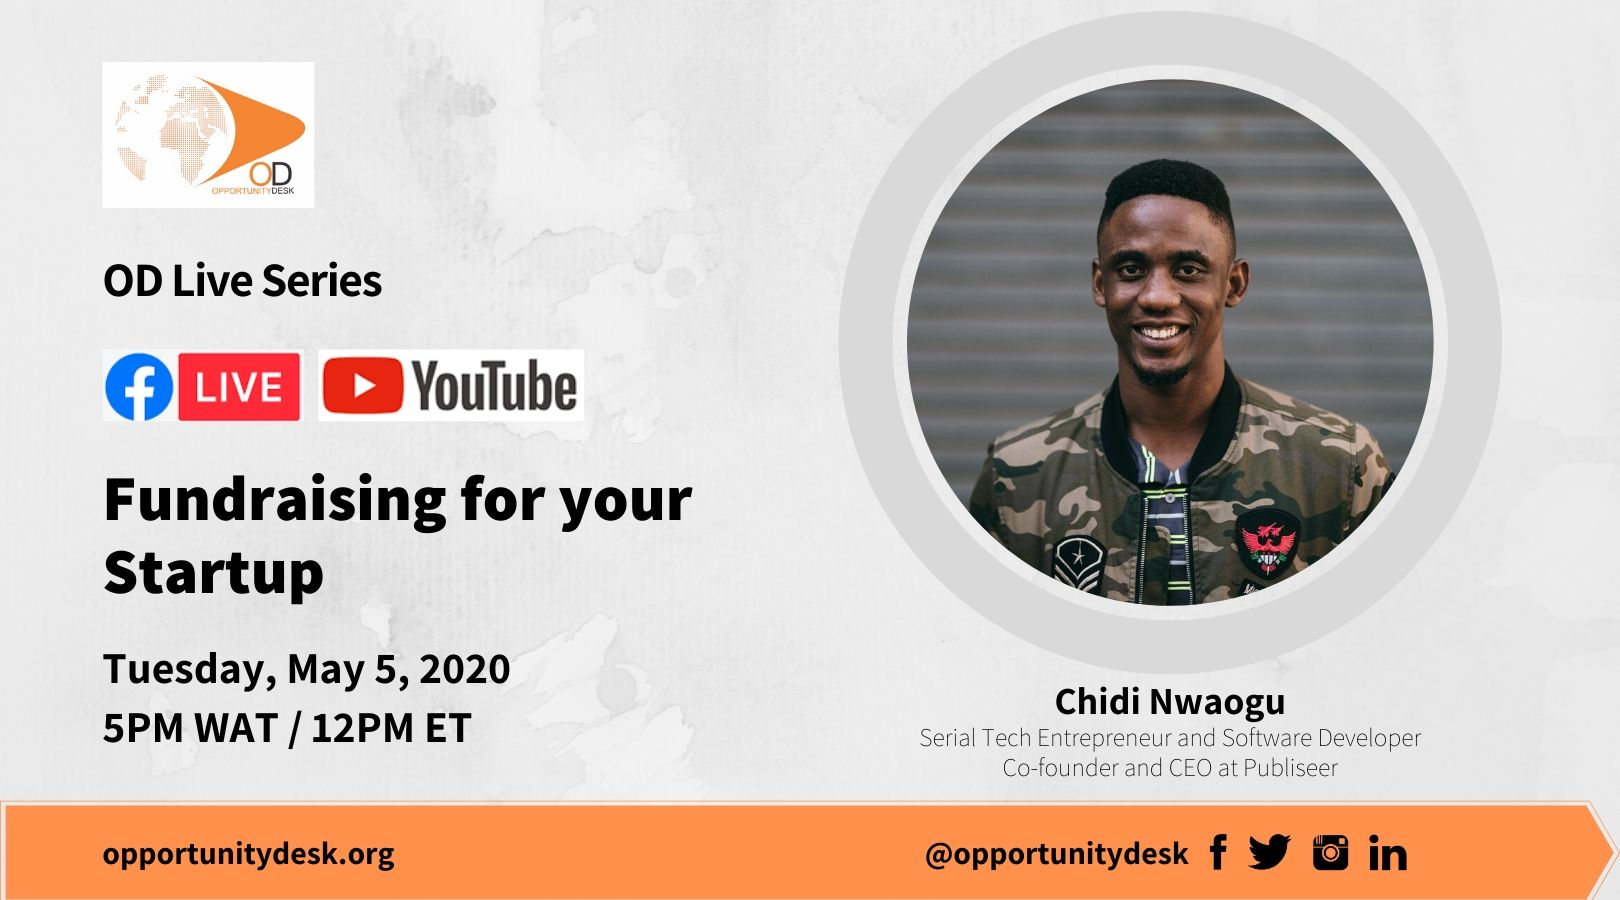 OD Live with Chidi Nwaogu: Fundraising for Your Startup